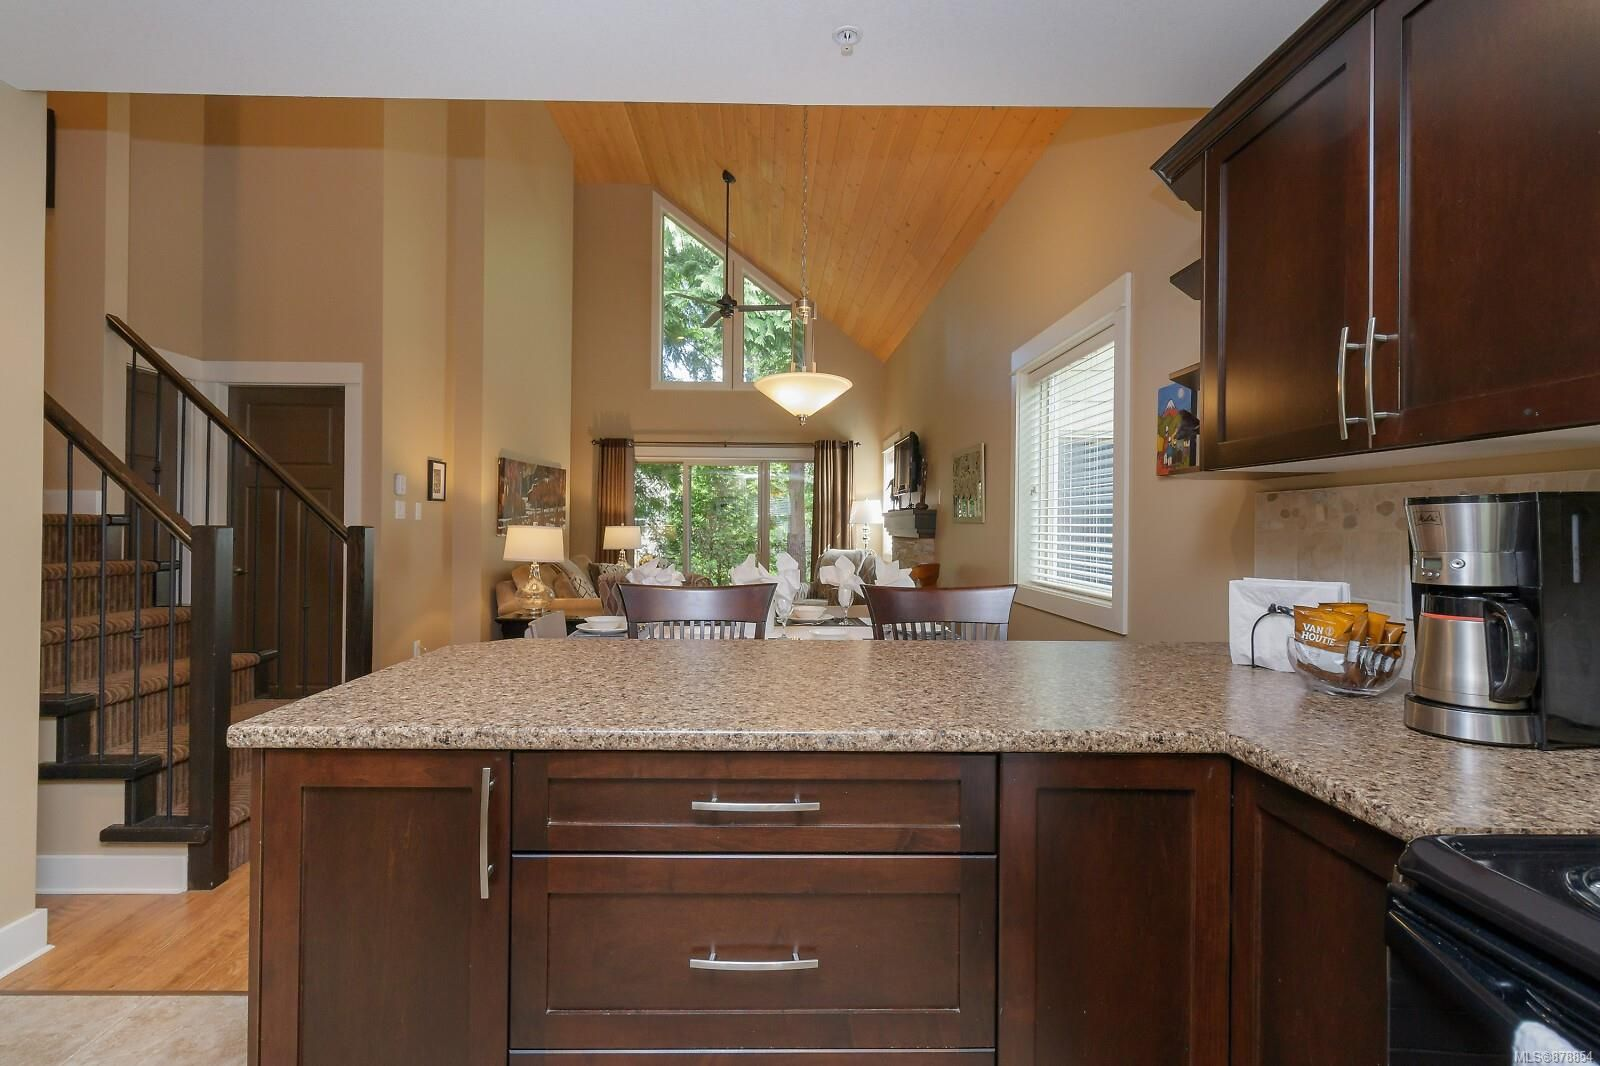 Photo 19: Photos: 223 1130 Resort Dr in : PQ Parksville Row/Townhouse for sale (Parksville/Qualicum)  : MLS®# 878854